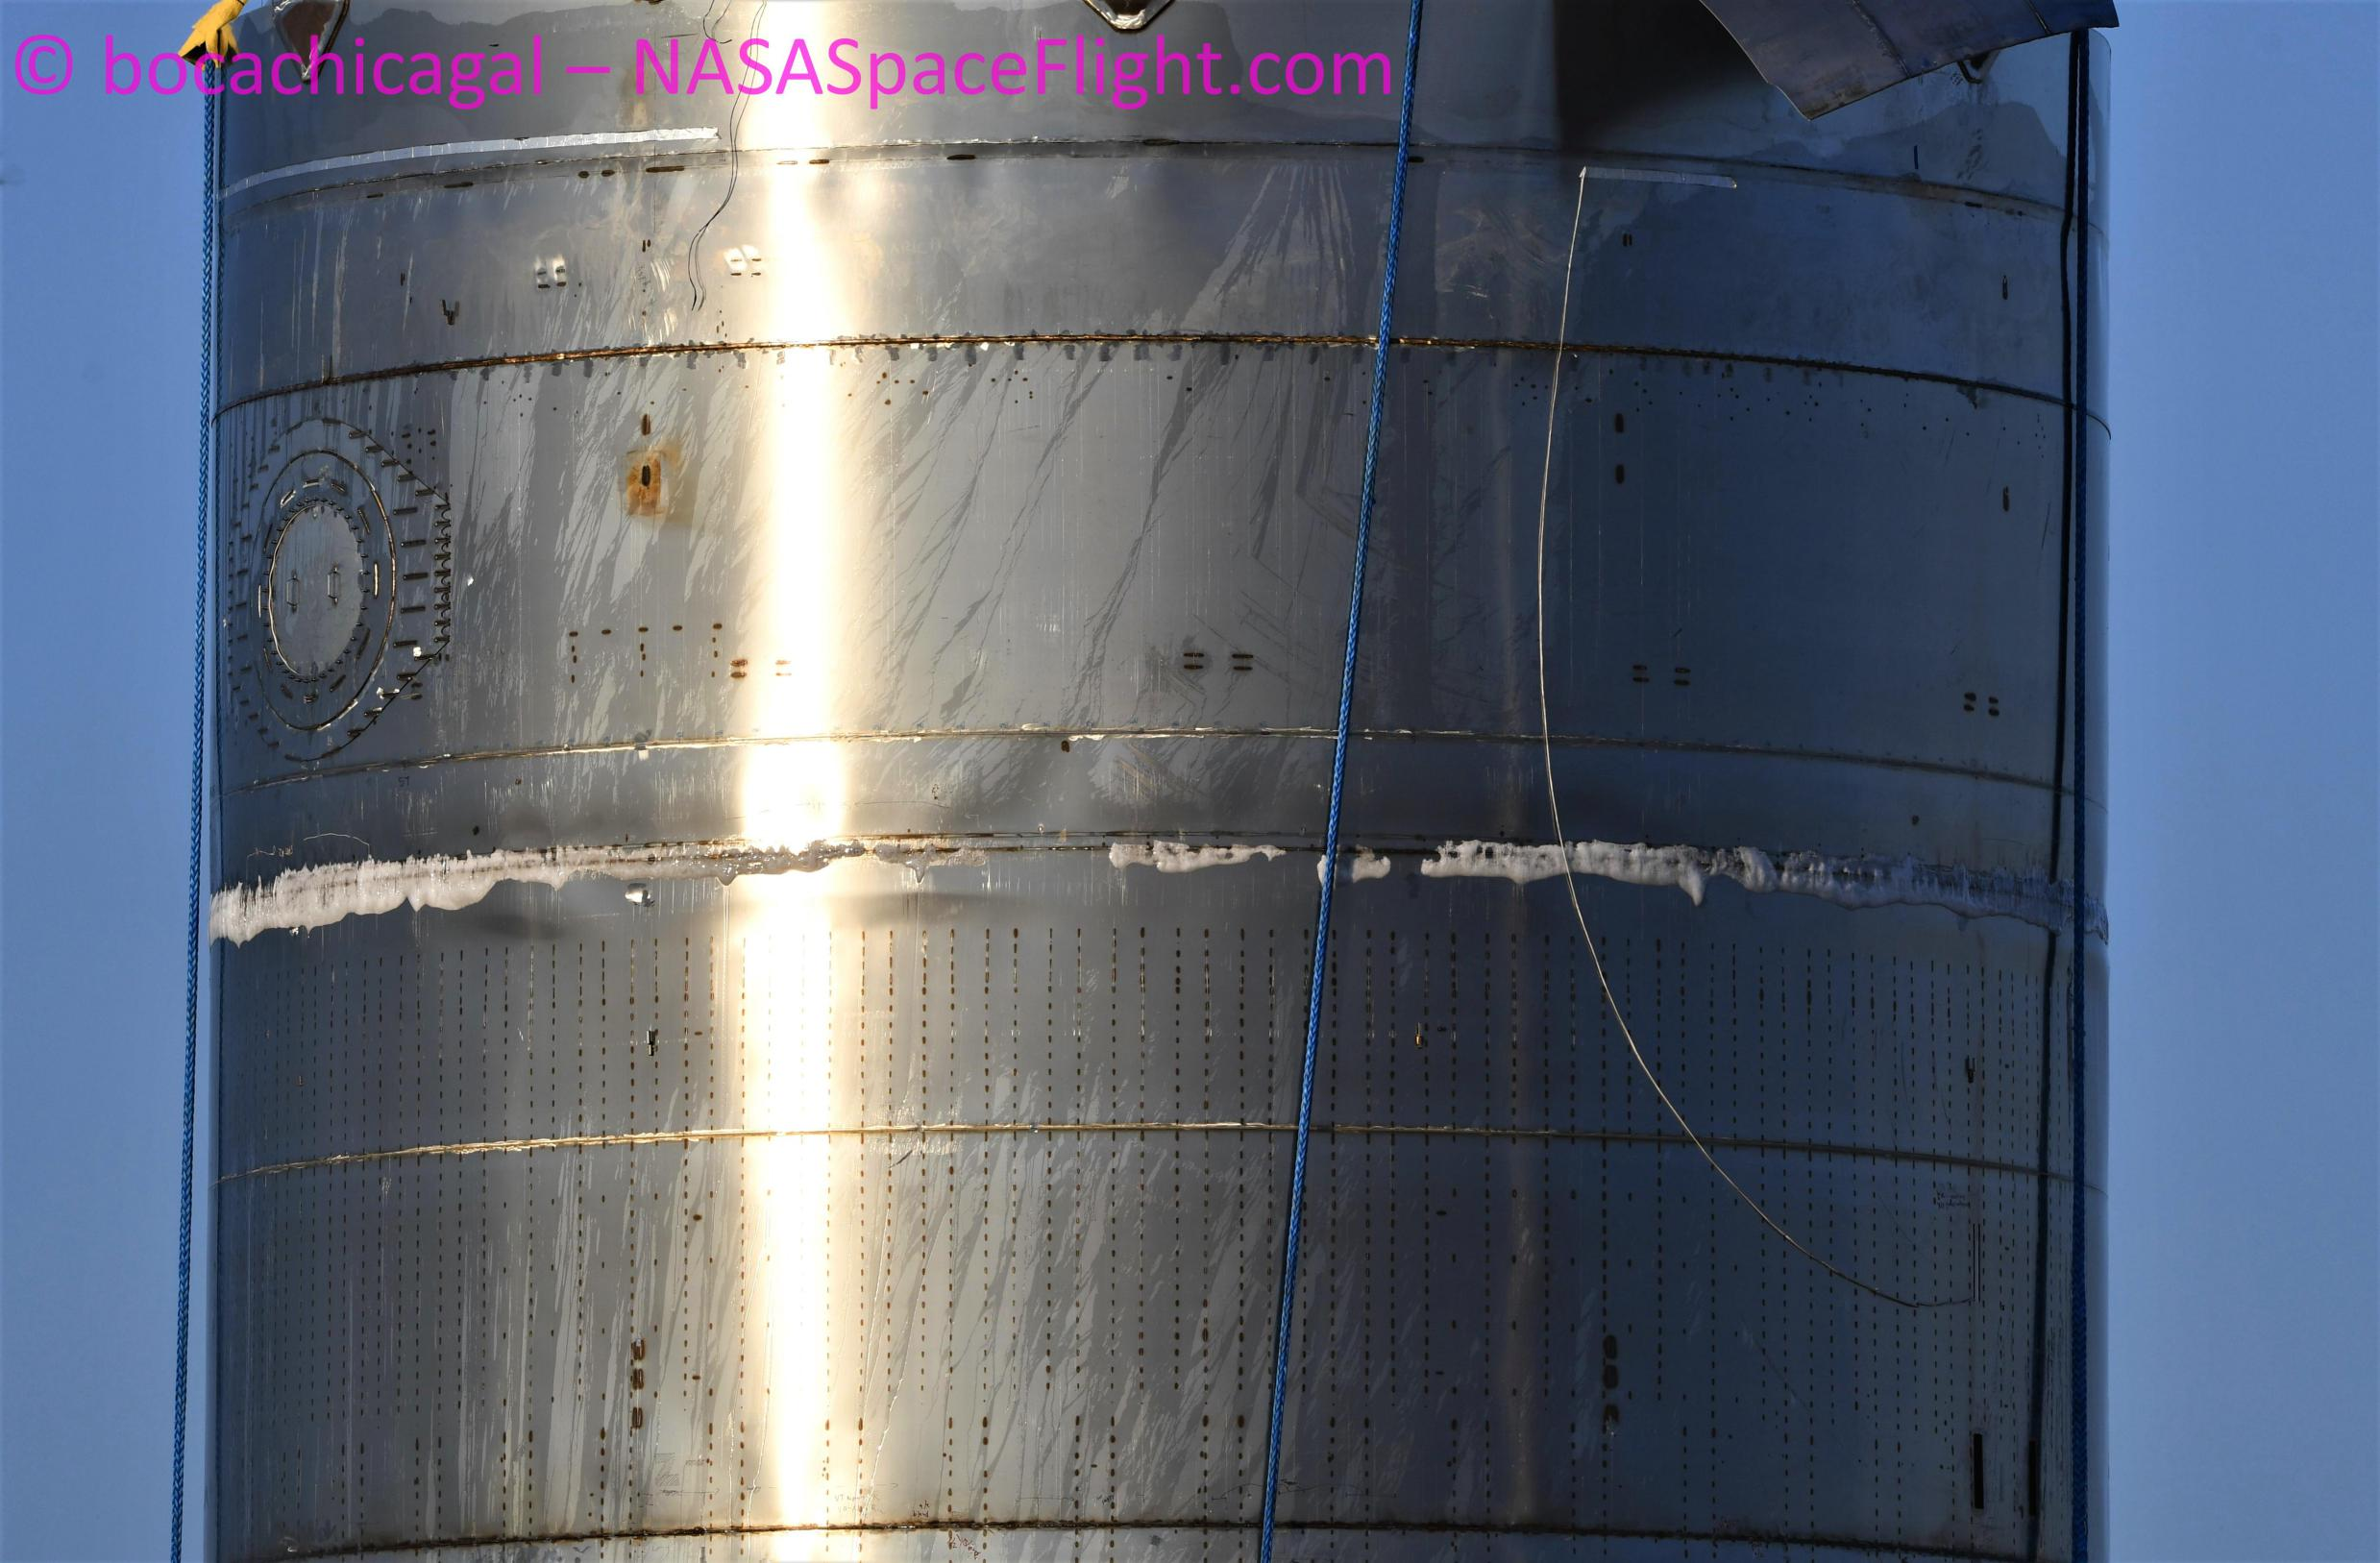 Starship Boca Chica 092320 (NASASpaceflight – bocachicagal) SN7.1 remnants 5 (c)